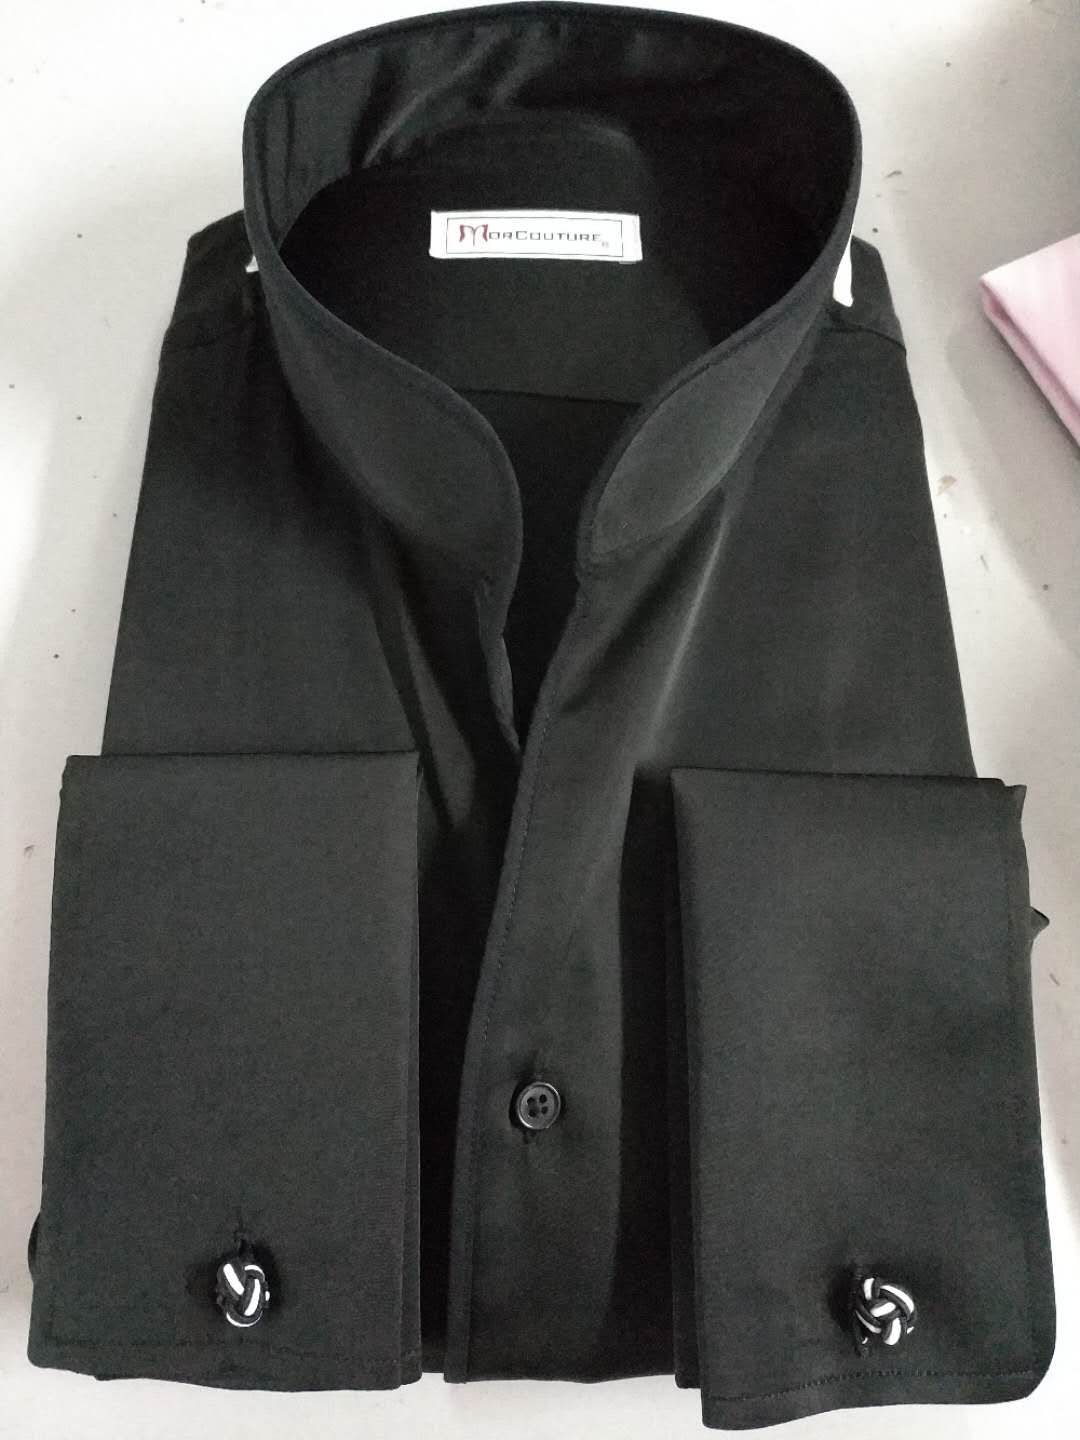 Morcouture Black Ban Collar Shirt If Unique Is What You Seek